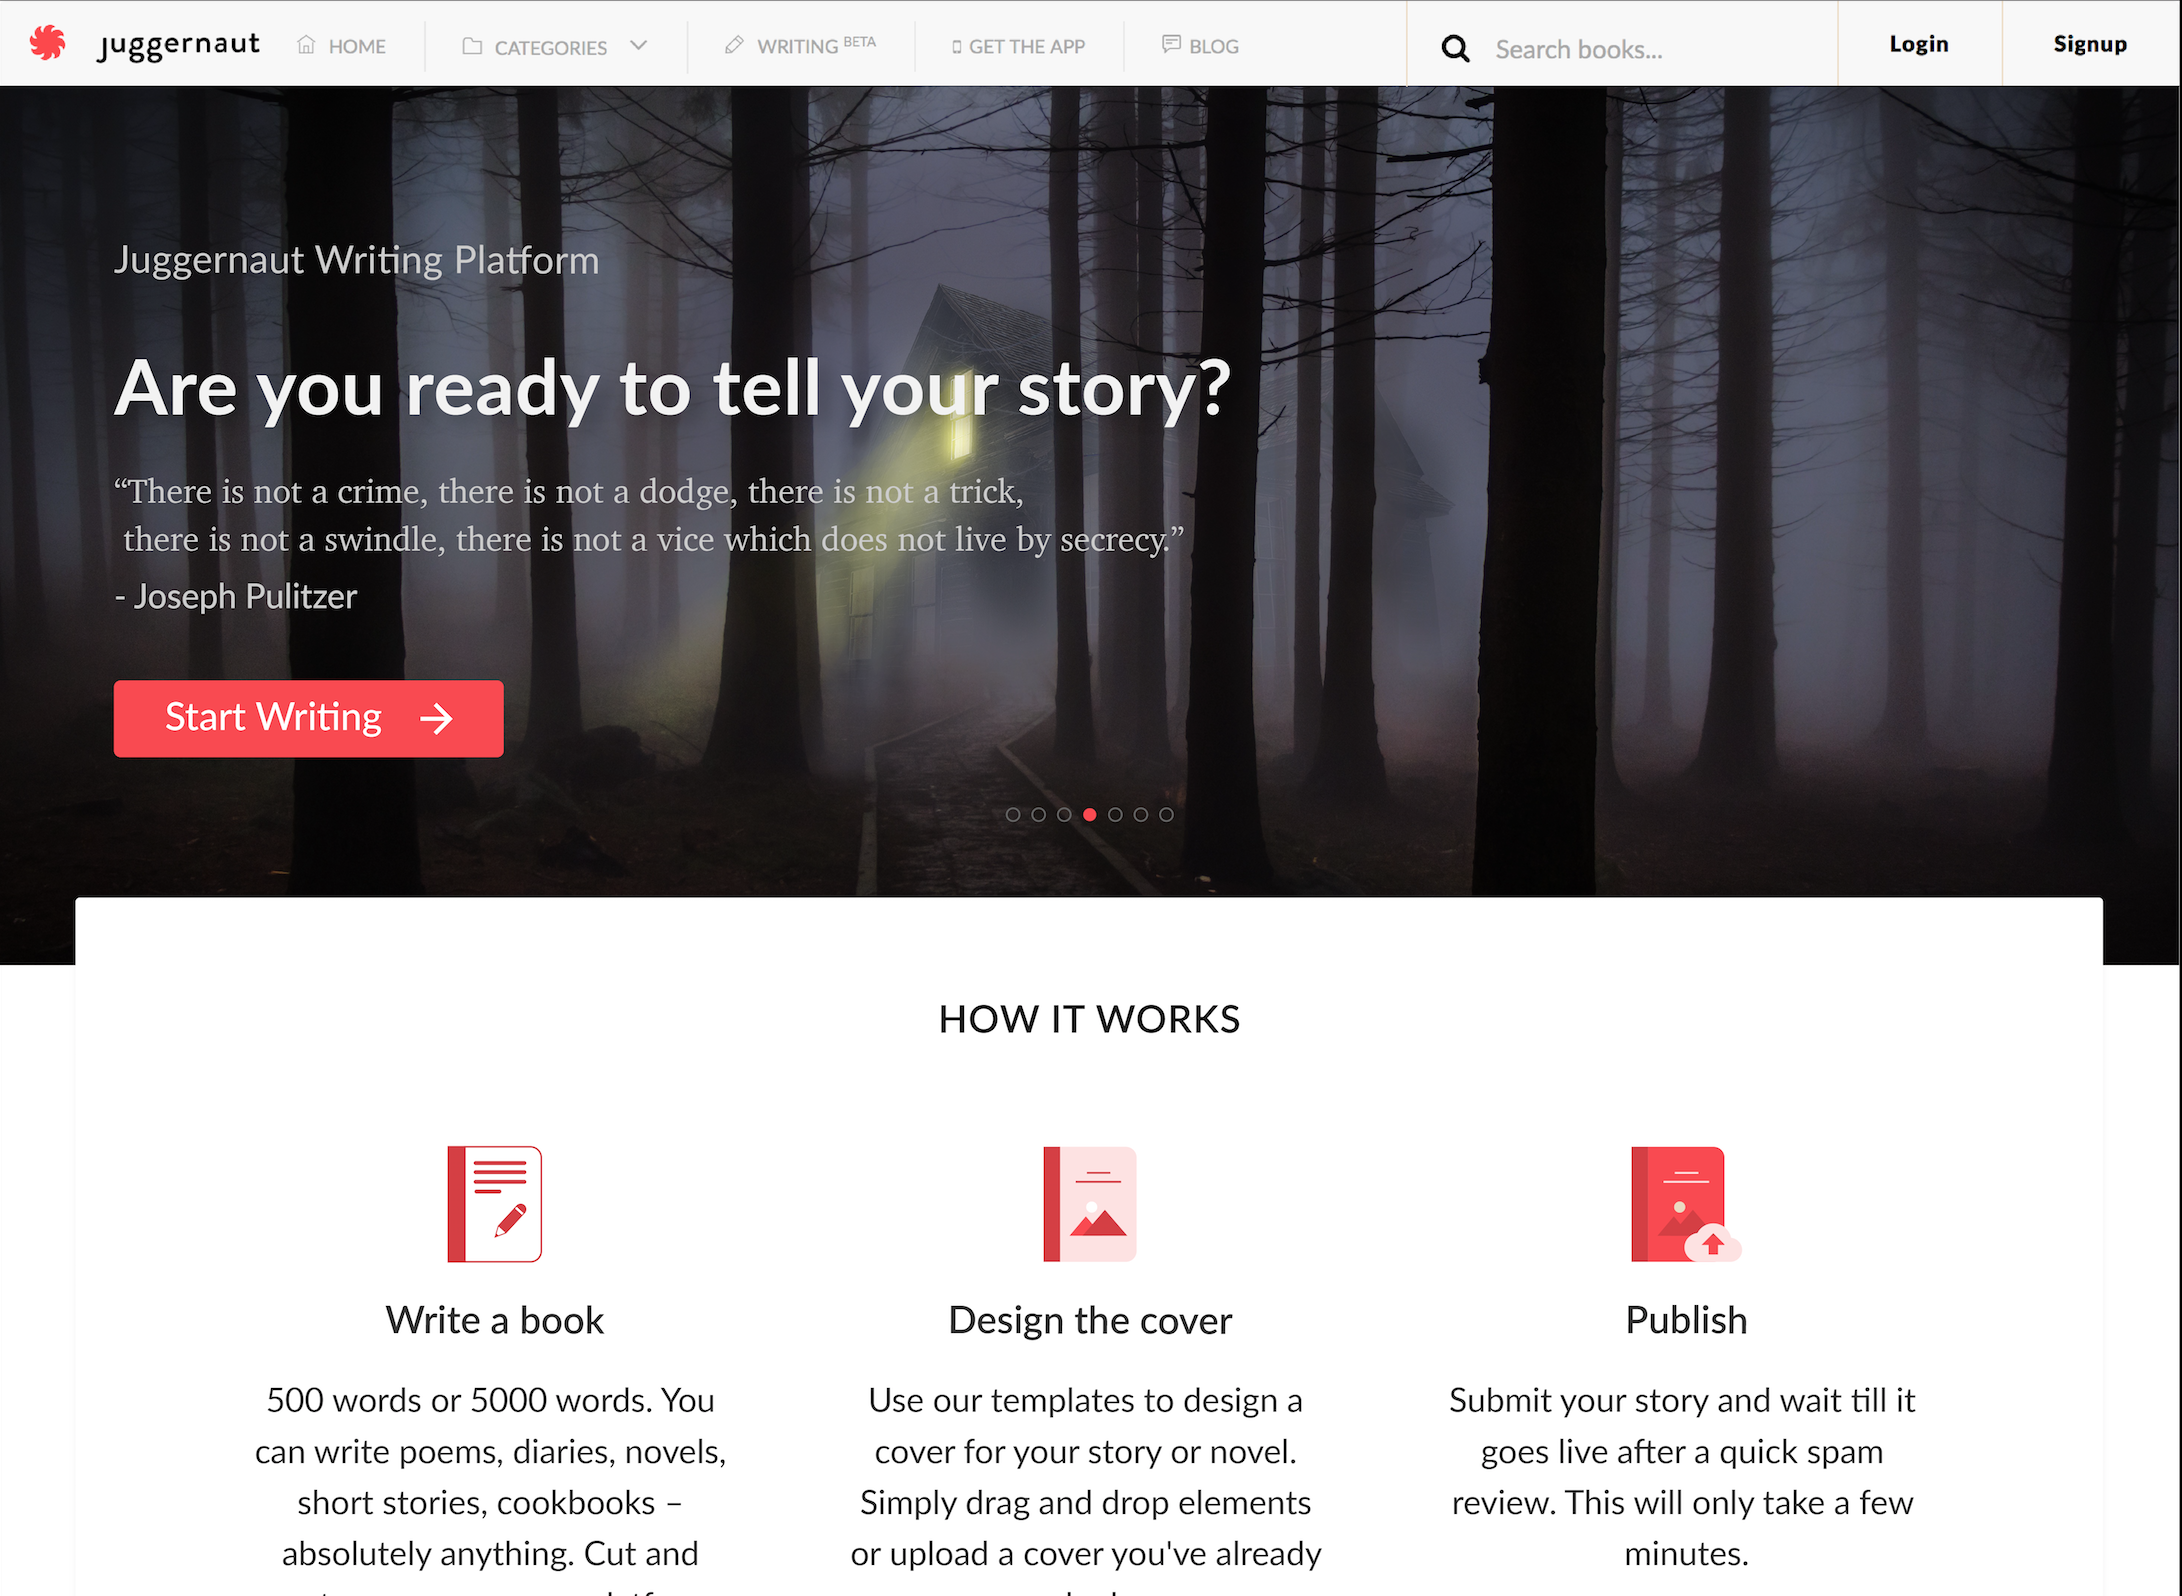 Writing Platform Landing Page - Banner Screenshot - Shared